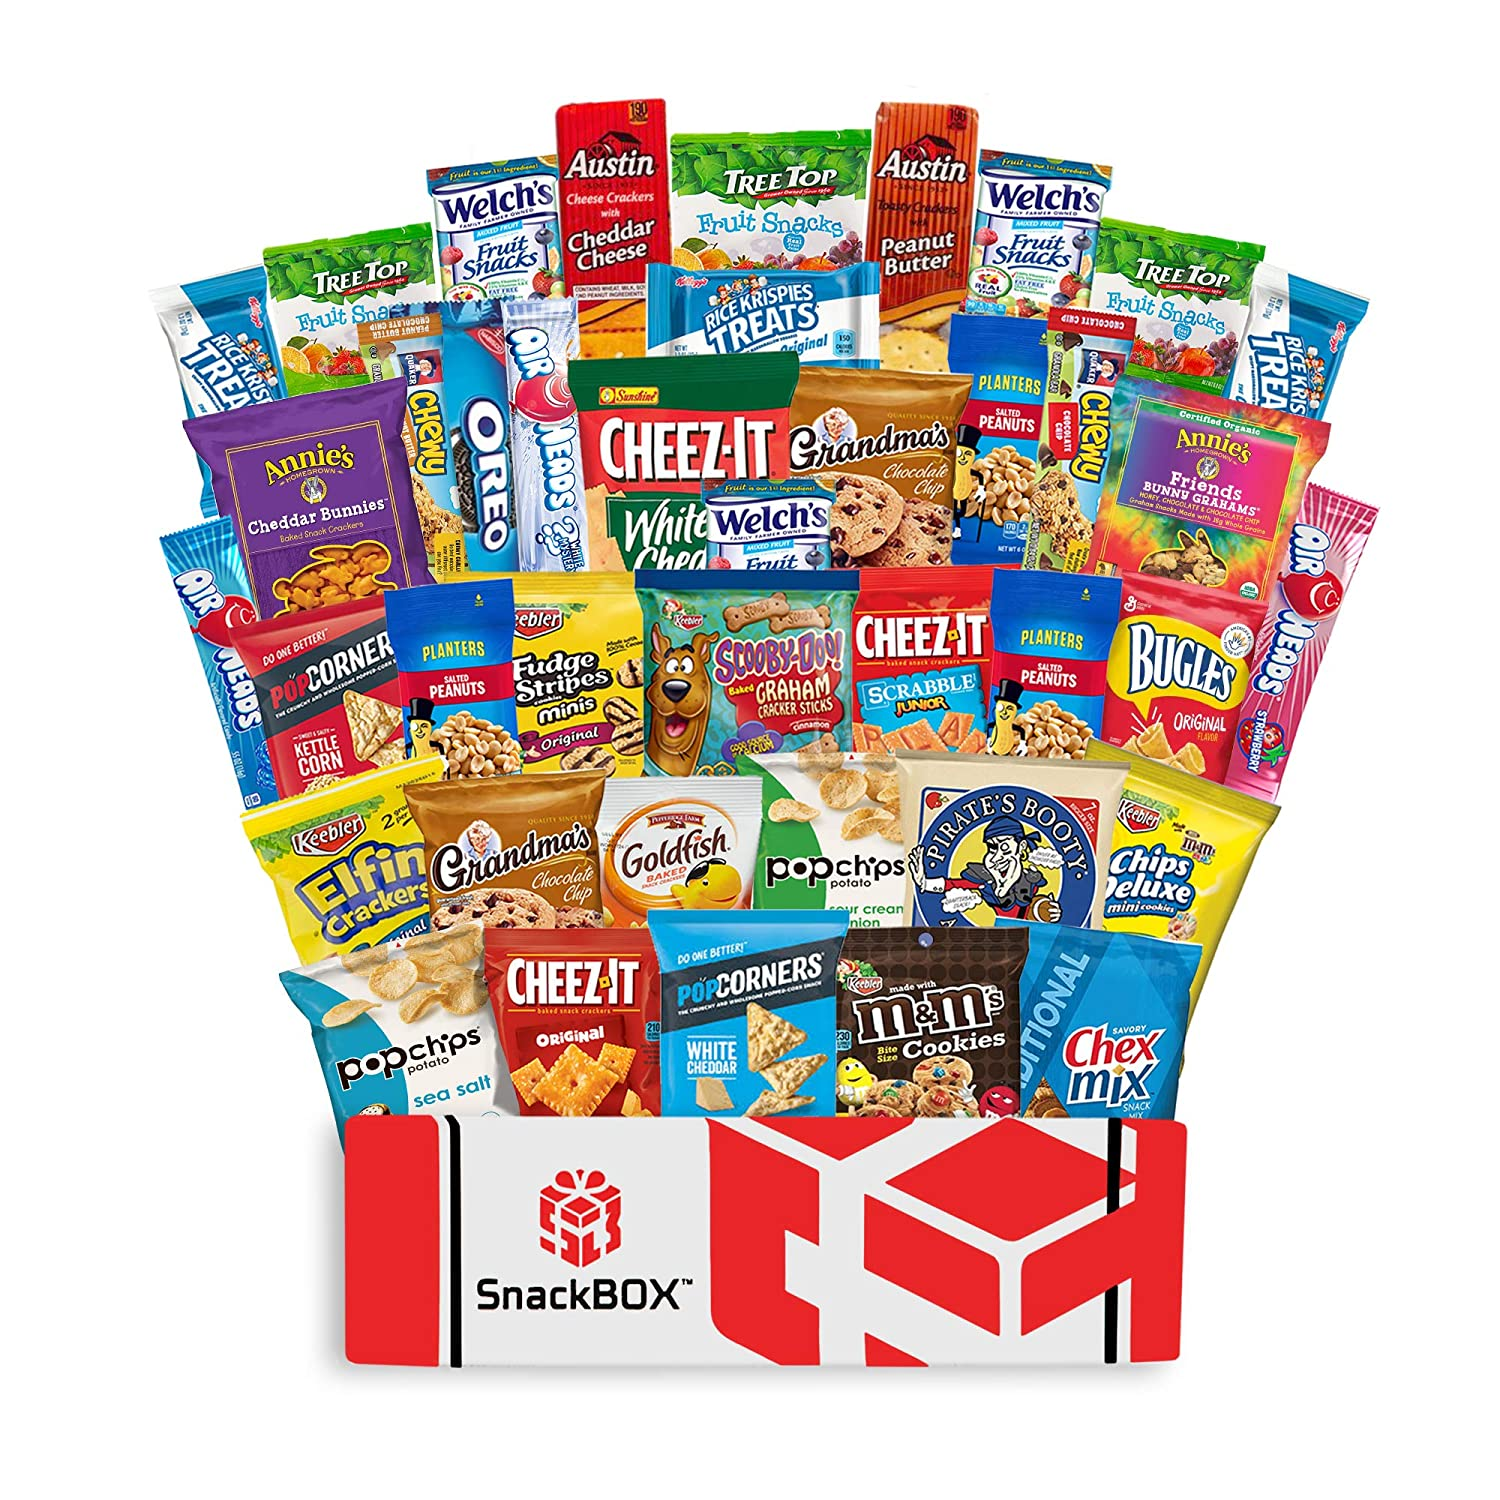 Care Package Snacks for College Students, Finals, Office, Easter, Deployment, Military and Gift Ideas - Including Over 3 lbs of Chips, Cookies and Candy! (40 Count) 91n1luVRzKL